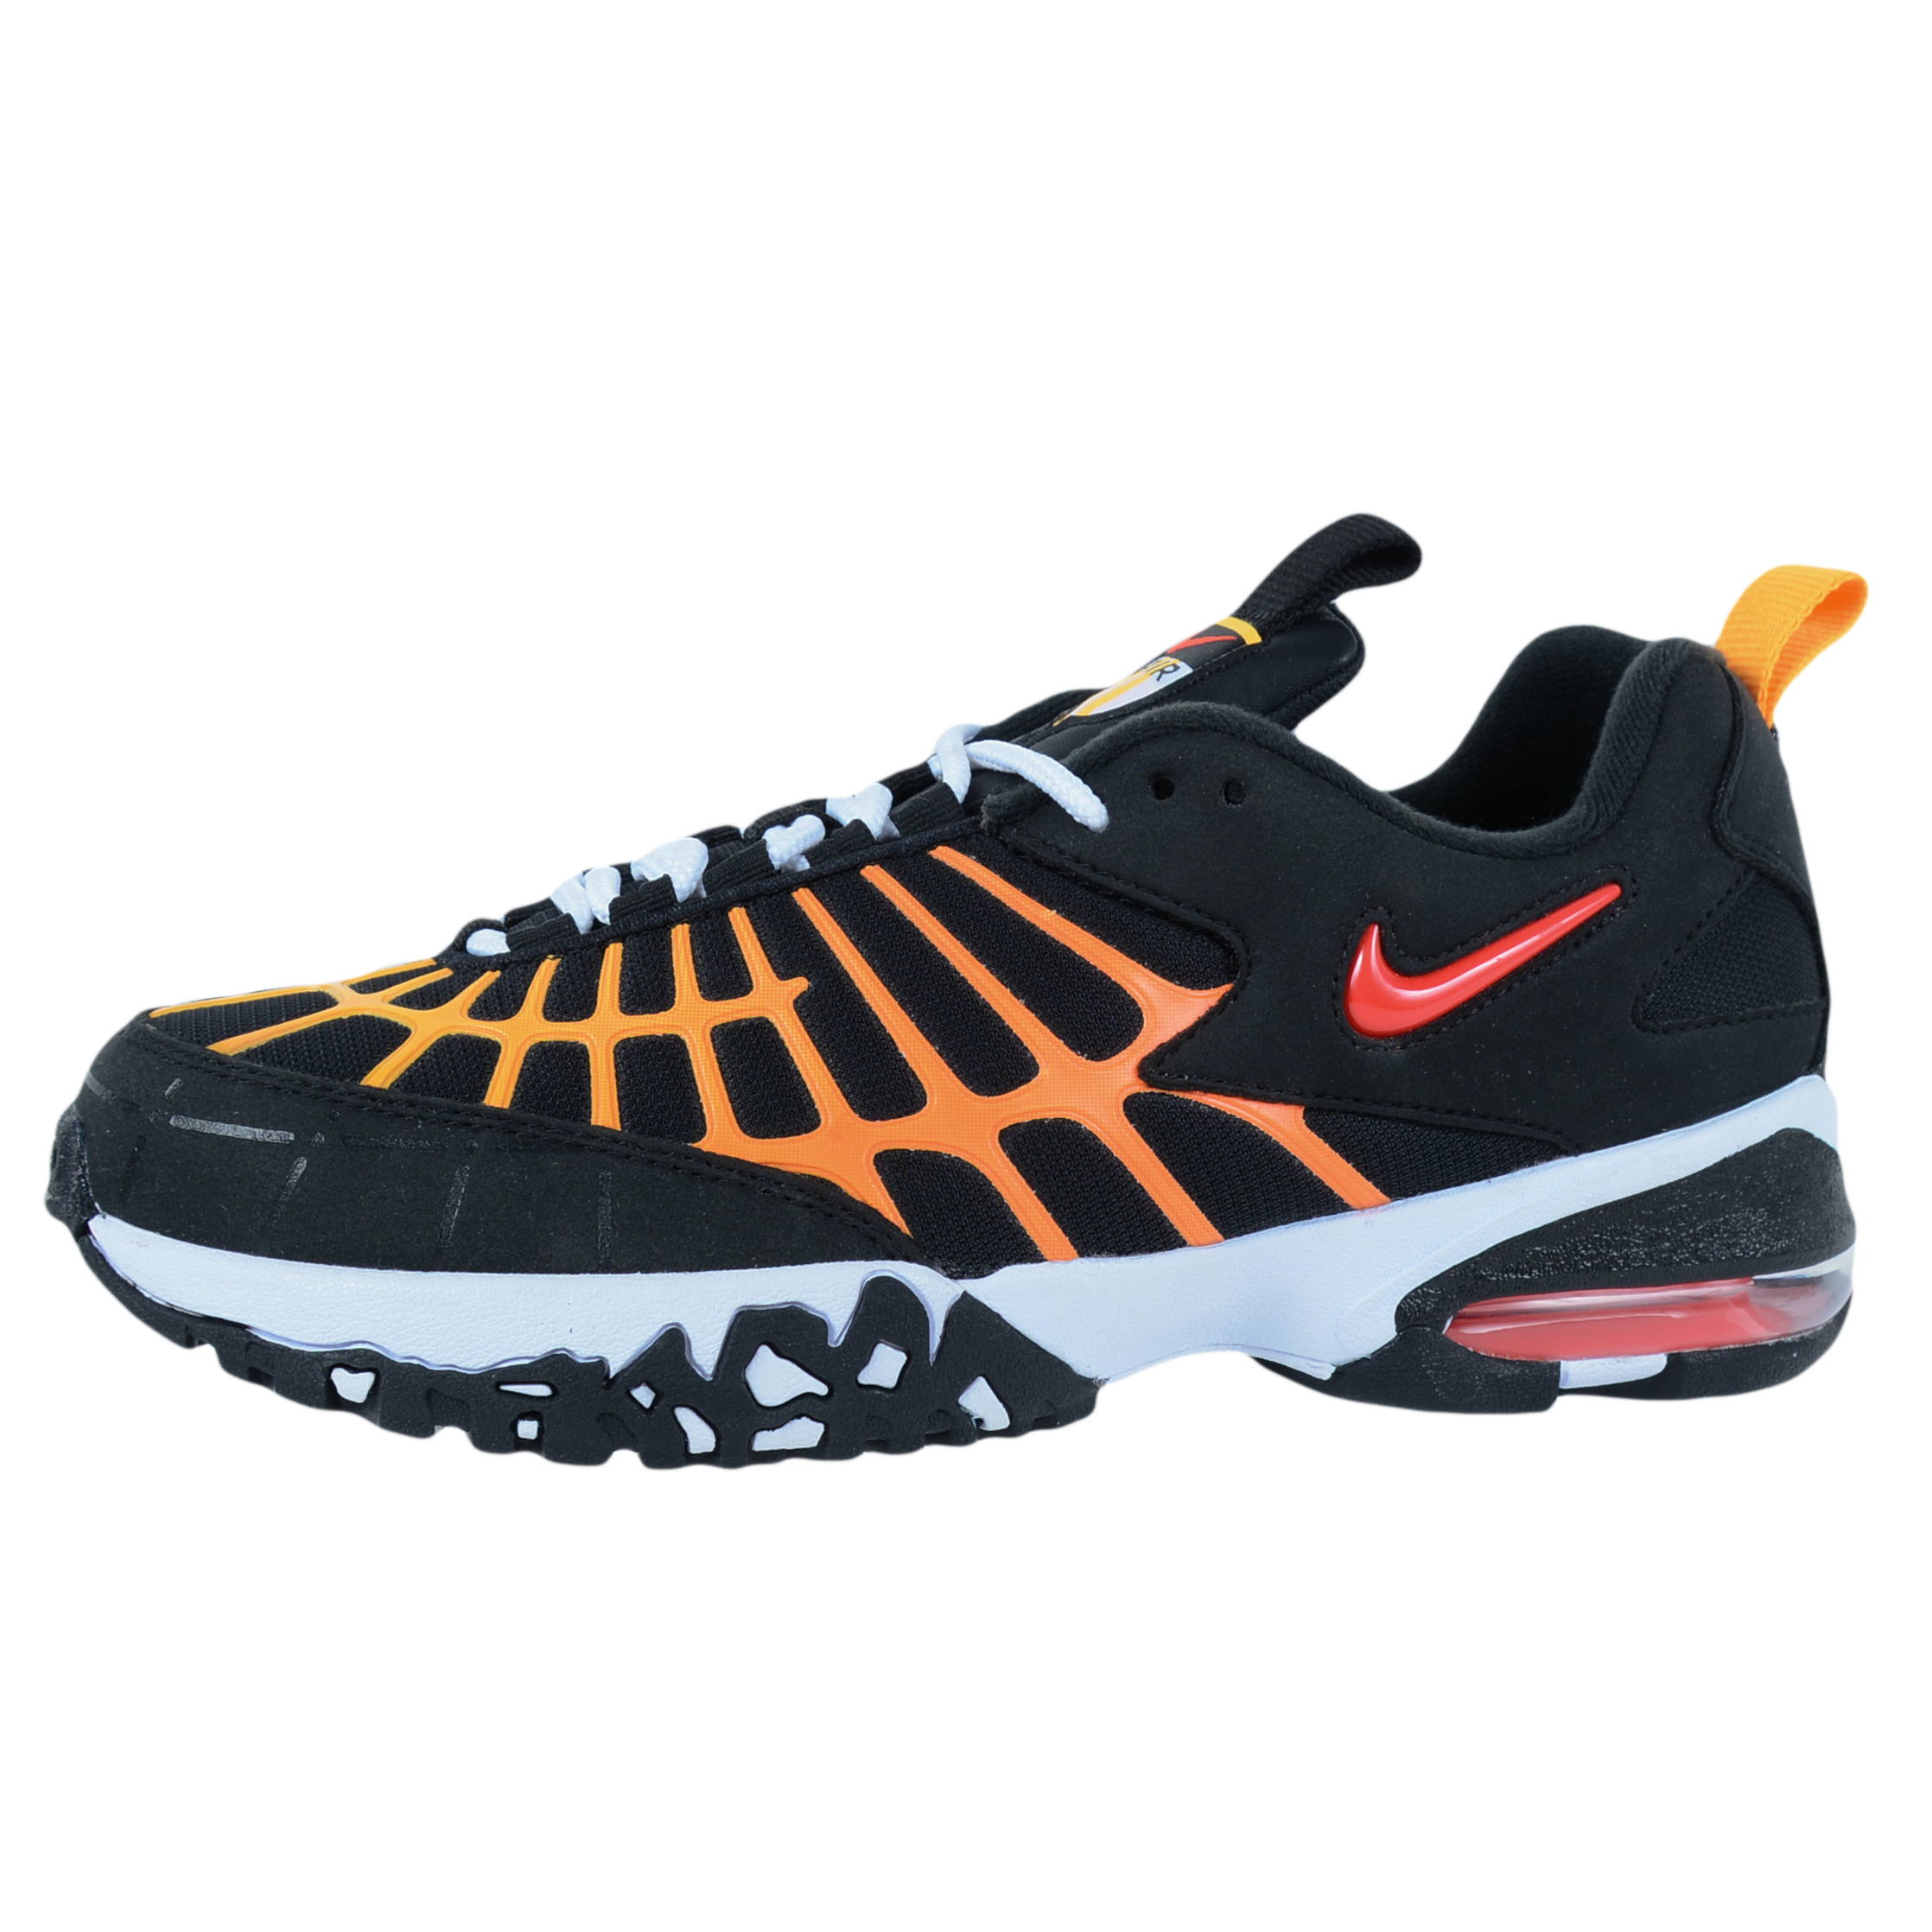 ... NIKE AIR MAX 120 TRAINERS BLACK BRIGHT CRIMSON LASER ORANGE WHITE 819857  003 ... 2ad2f5319